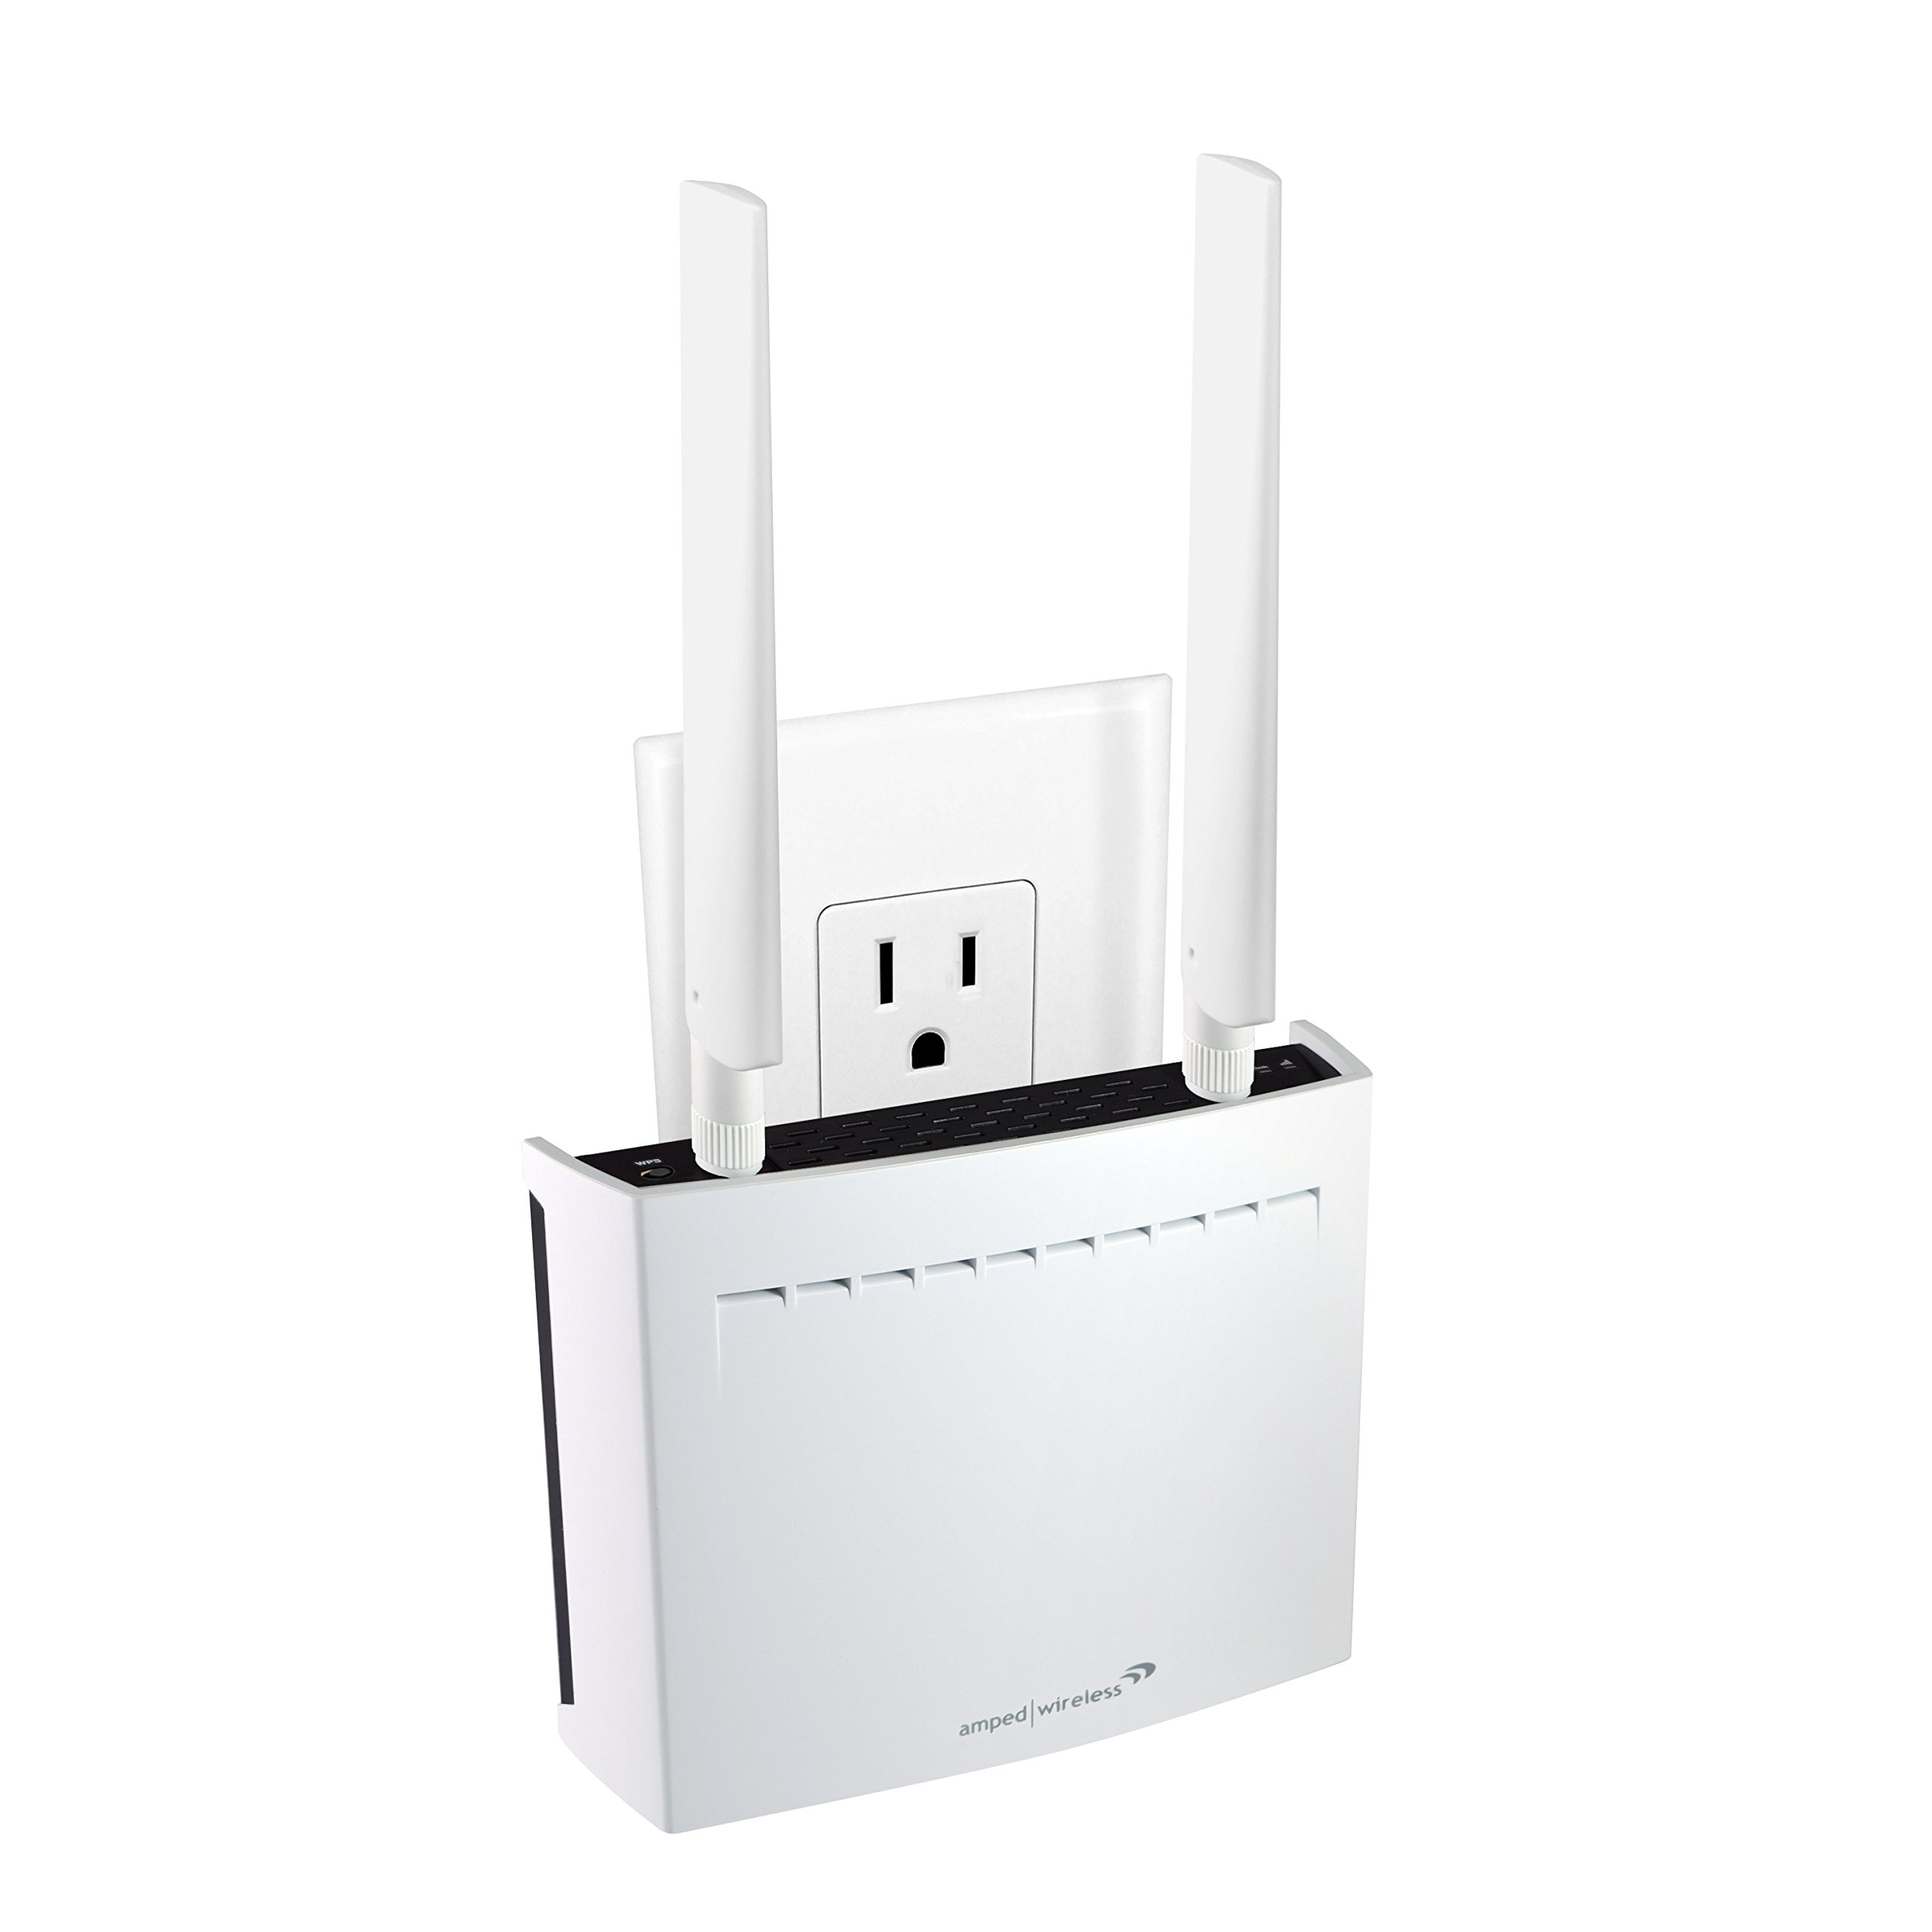 Amped Wireless High Power AC2600 Plug-In Wi-Fi Range Extender with MU-MIMO (REC44M) by Amped Wireless (Image #3)